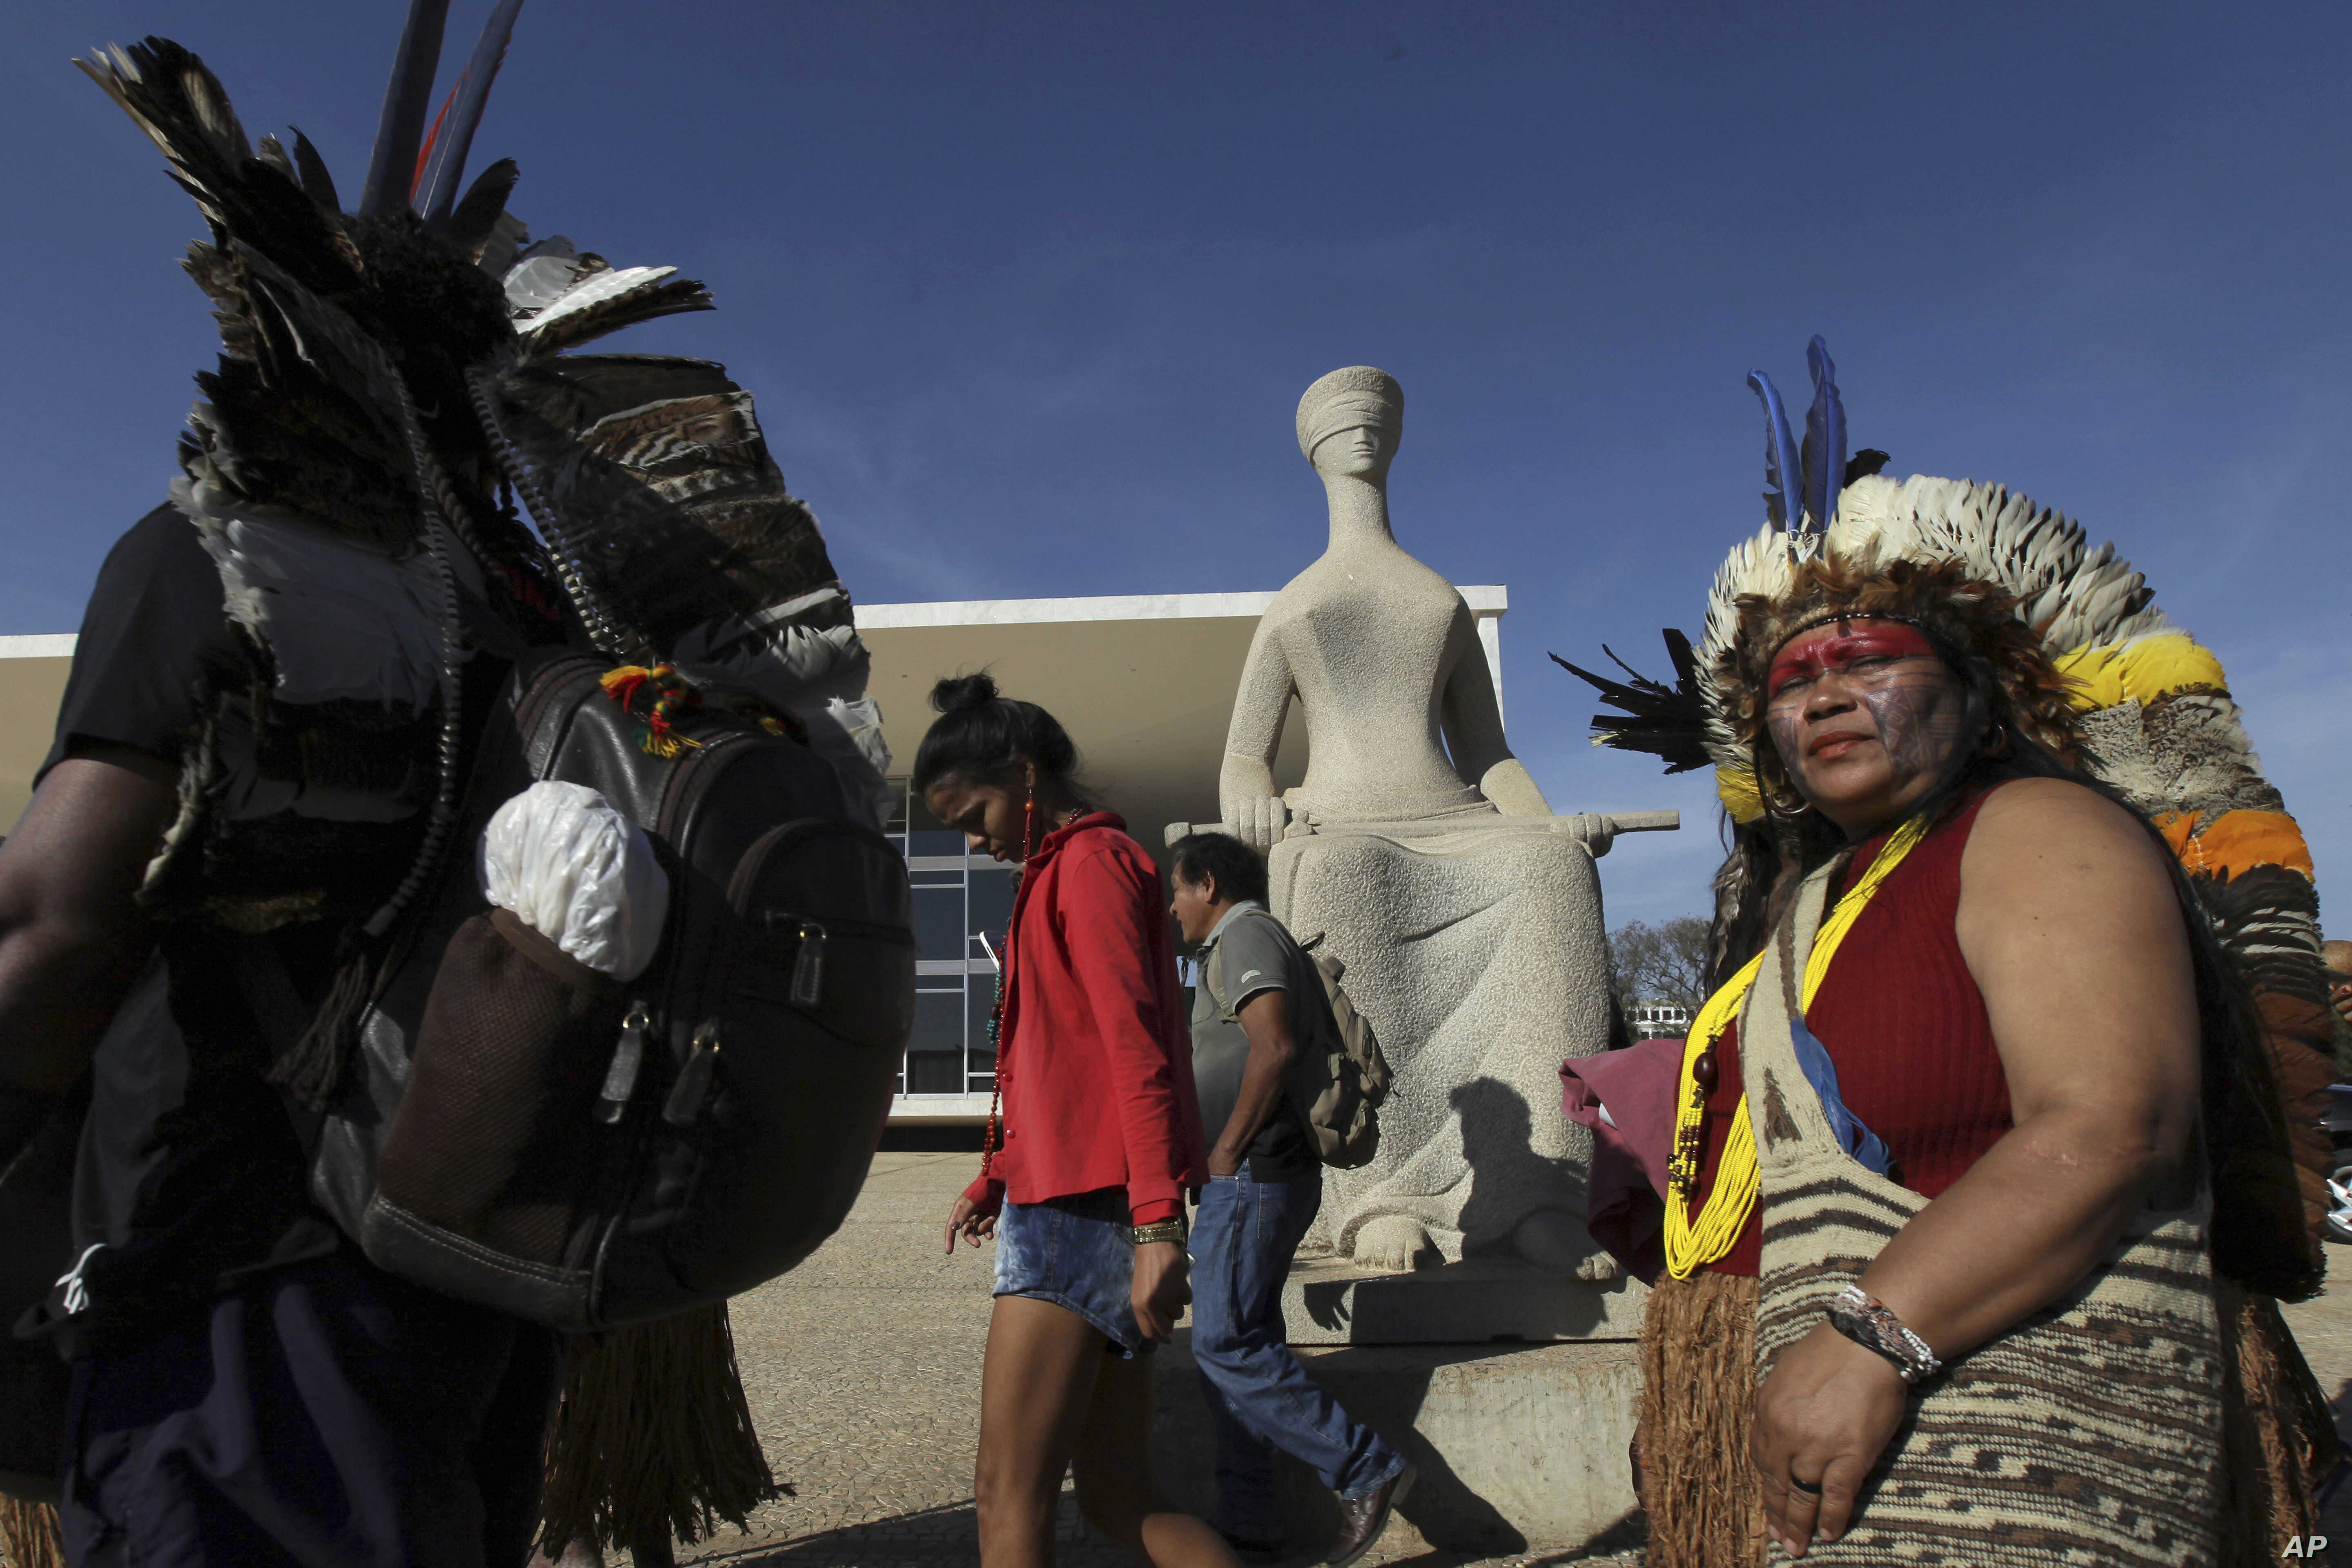 Indians walk past a statue of justice as they protest outside the Supreme Court, in Brasilia, Brazil, Aug. 16, 2017. Brazil's indigenous communities protested as the Supreme Court deliberated on the legality of President Michel Temer's plan to restri...